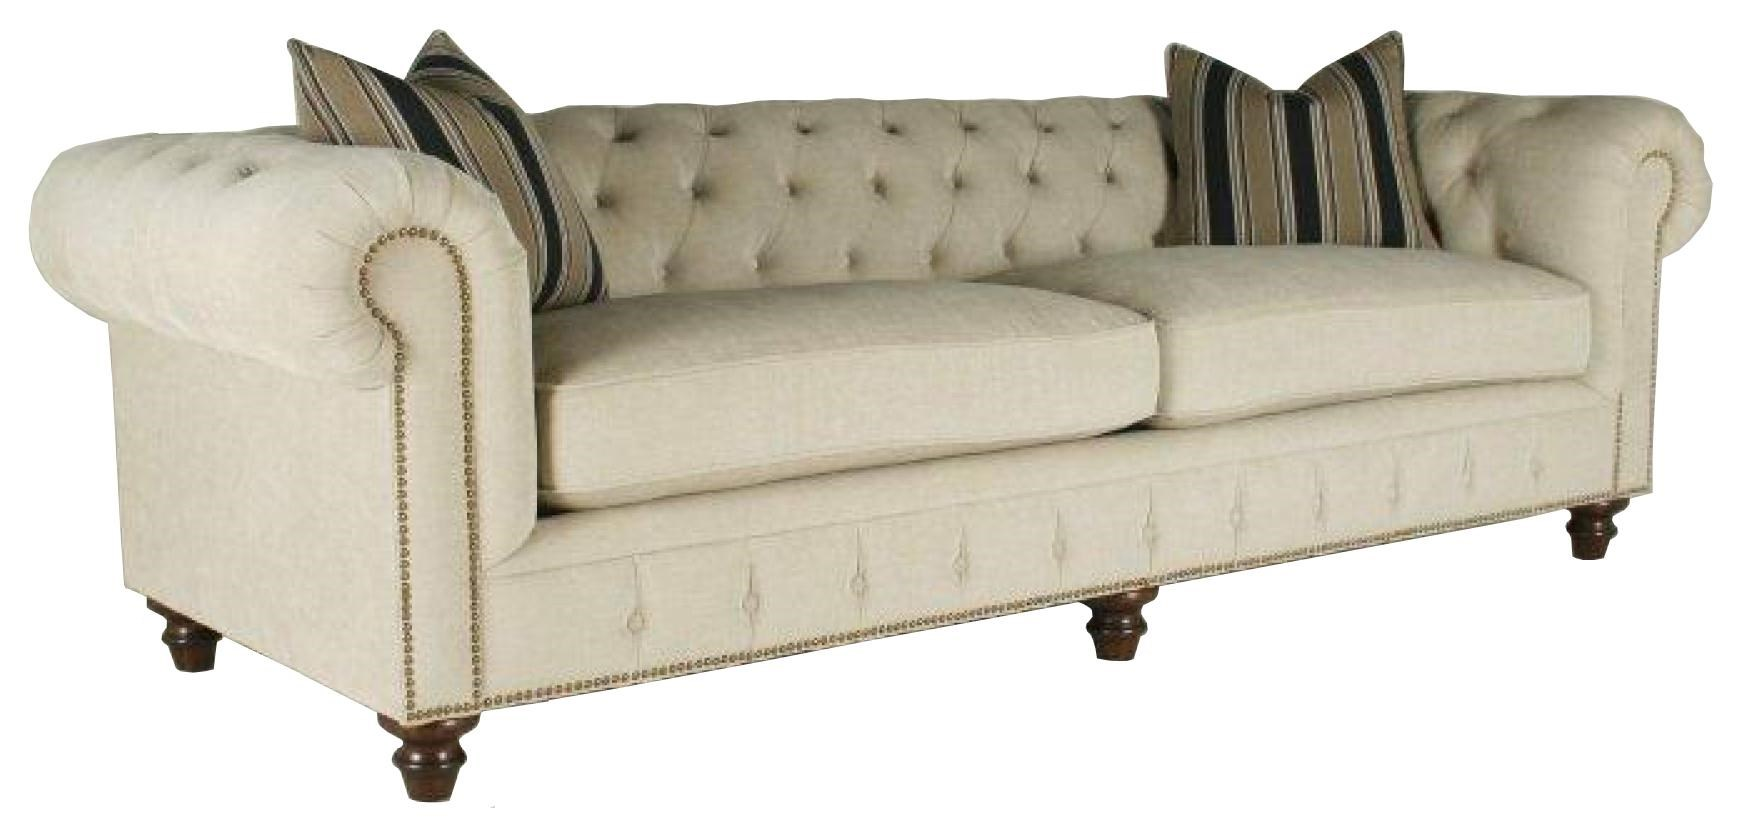 Rachlin Classics Shea Shea Sofa Couch With Rolled Arms And Tufted Seat  Cushions